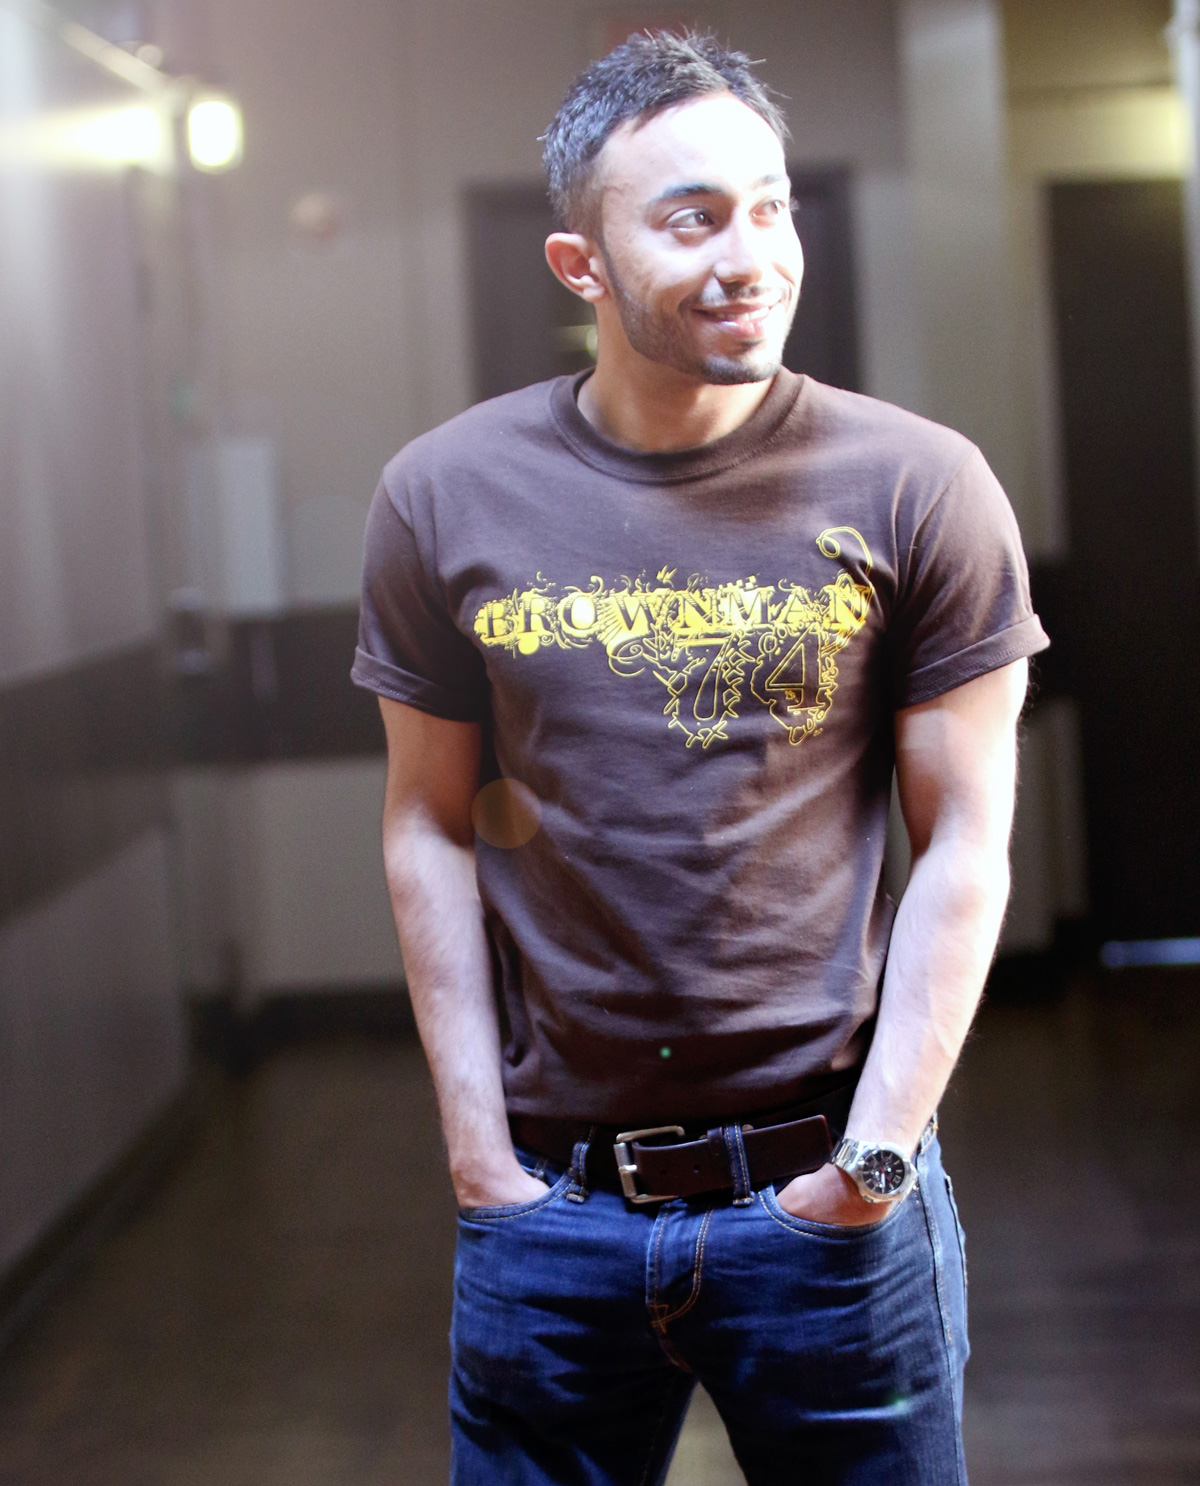 brownman74 t.shirt worn by South Asian male model.